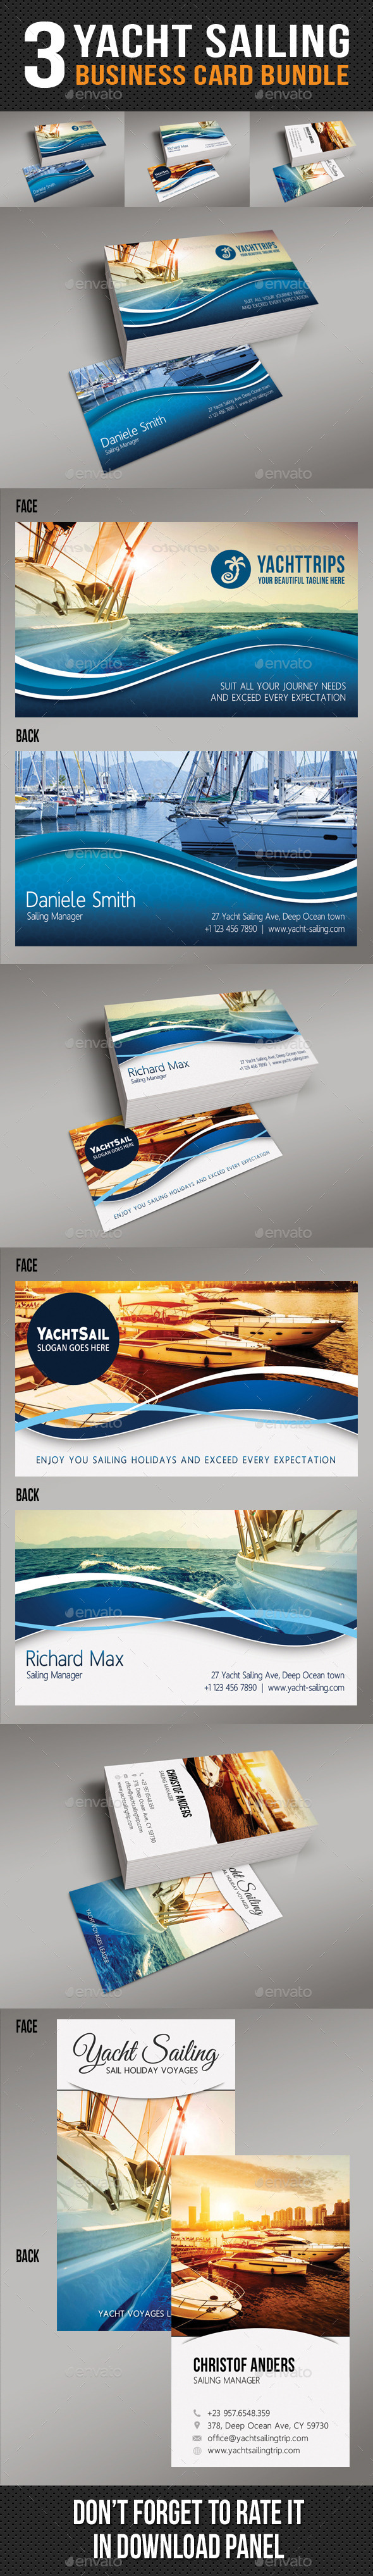 3 in 1 Yacht Sailing Business Card Bundle - Industry Specific Business Cards